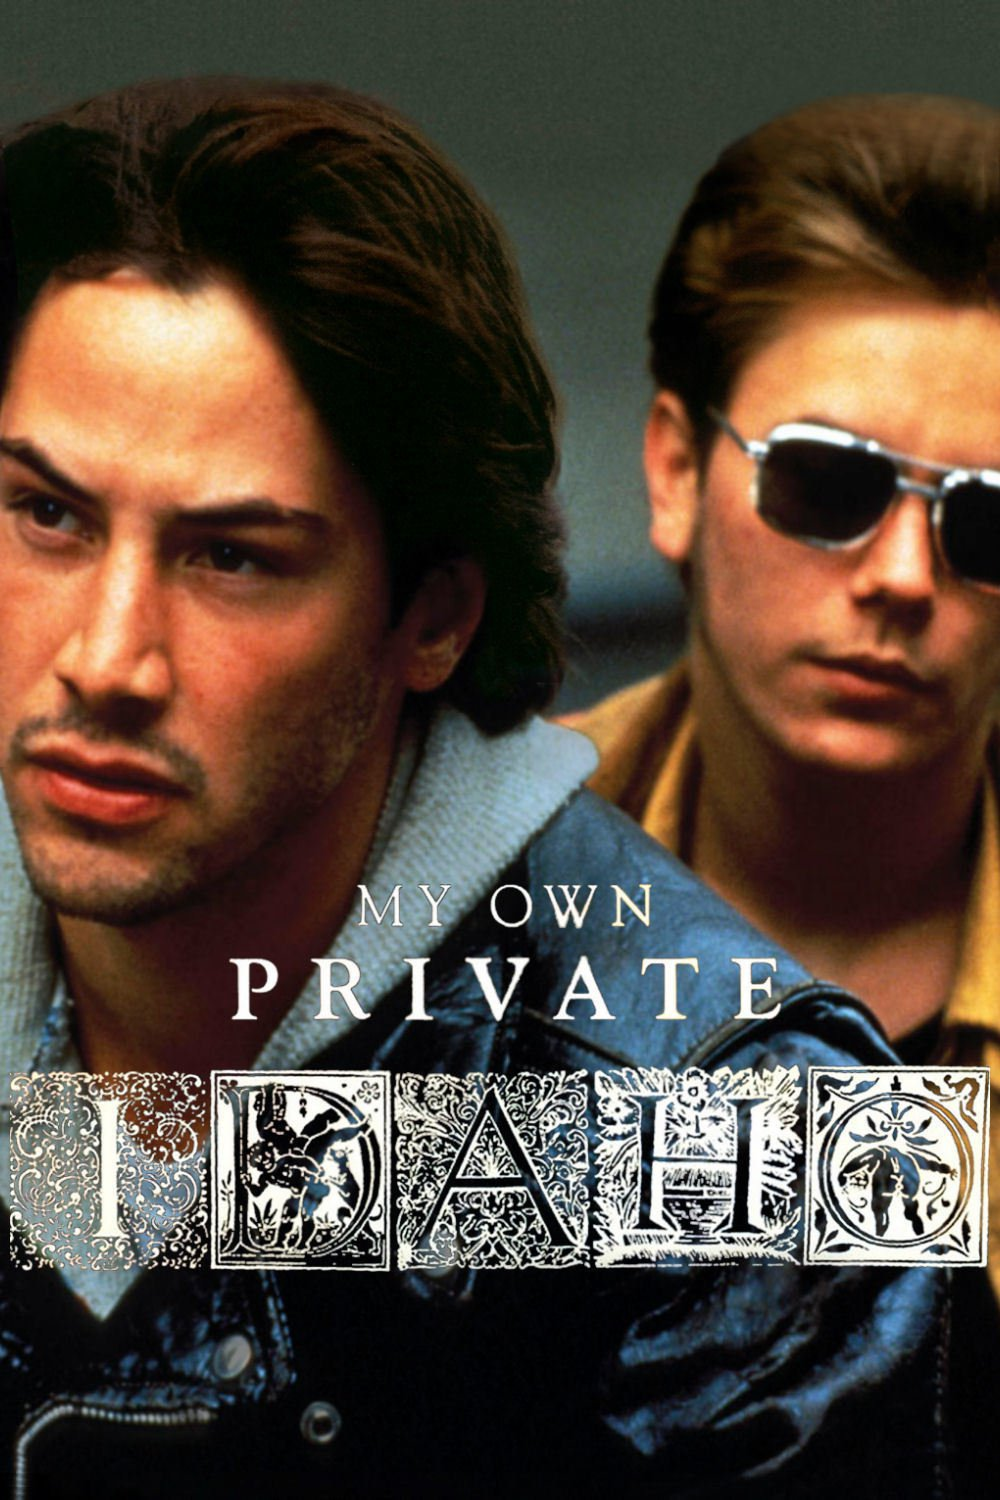 Poster for My Own Private Idaho